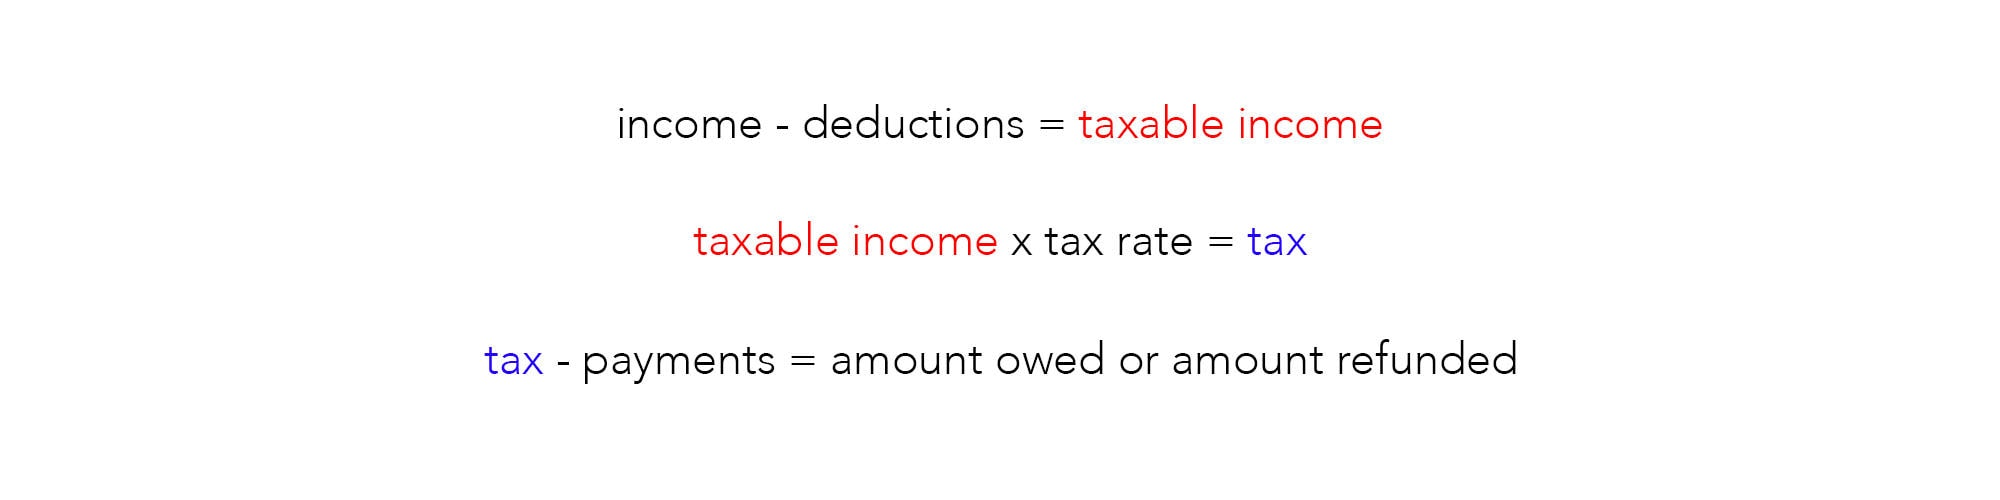 tax-equation-1